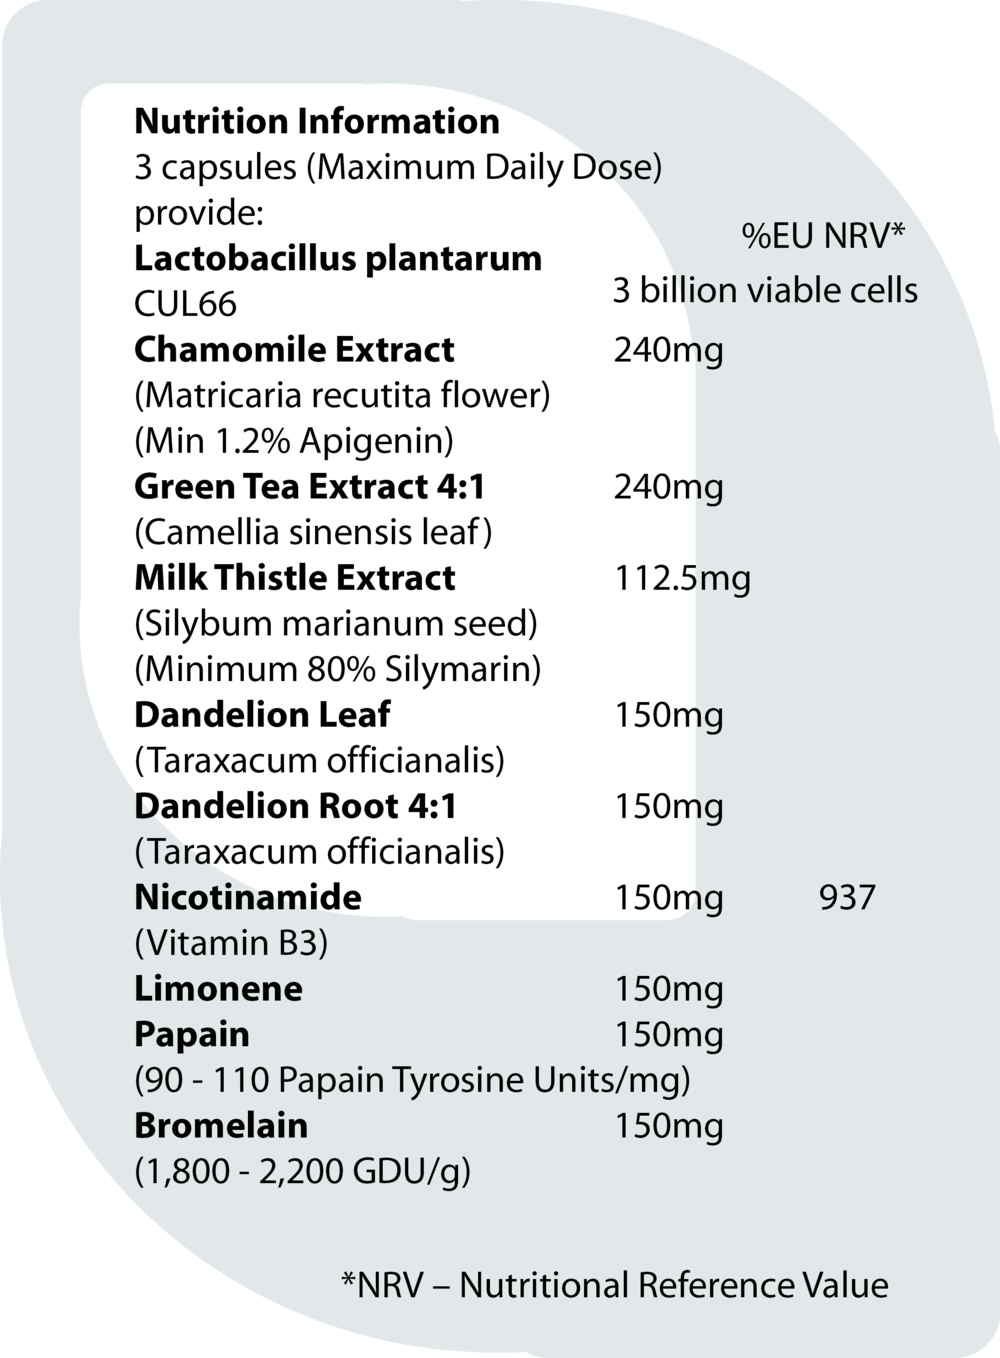 Epicell website nutrition info4.png